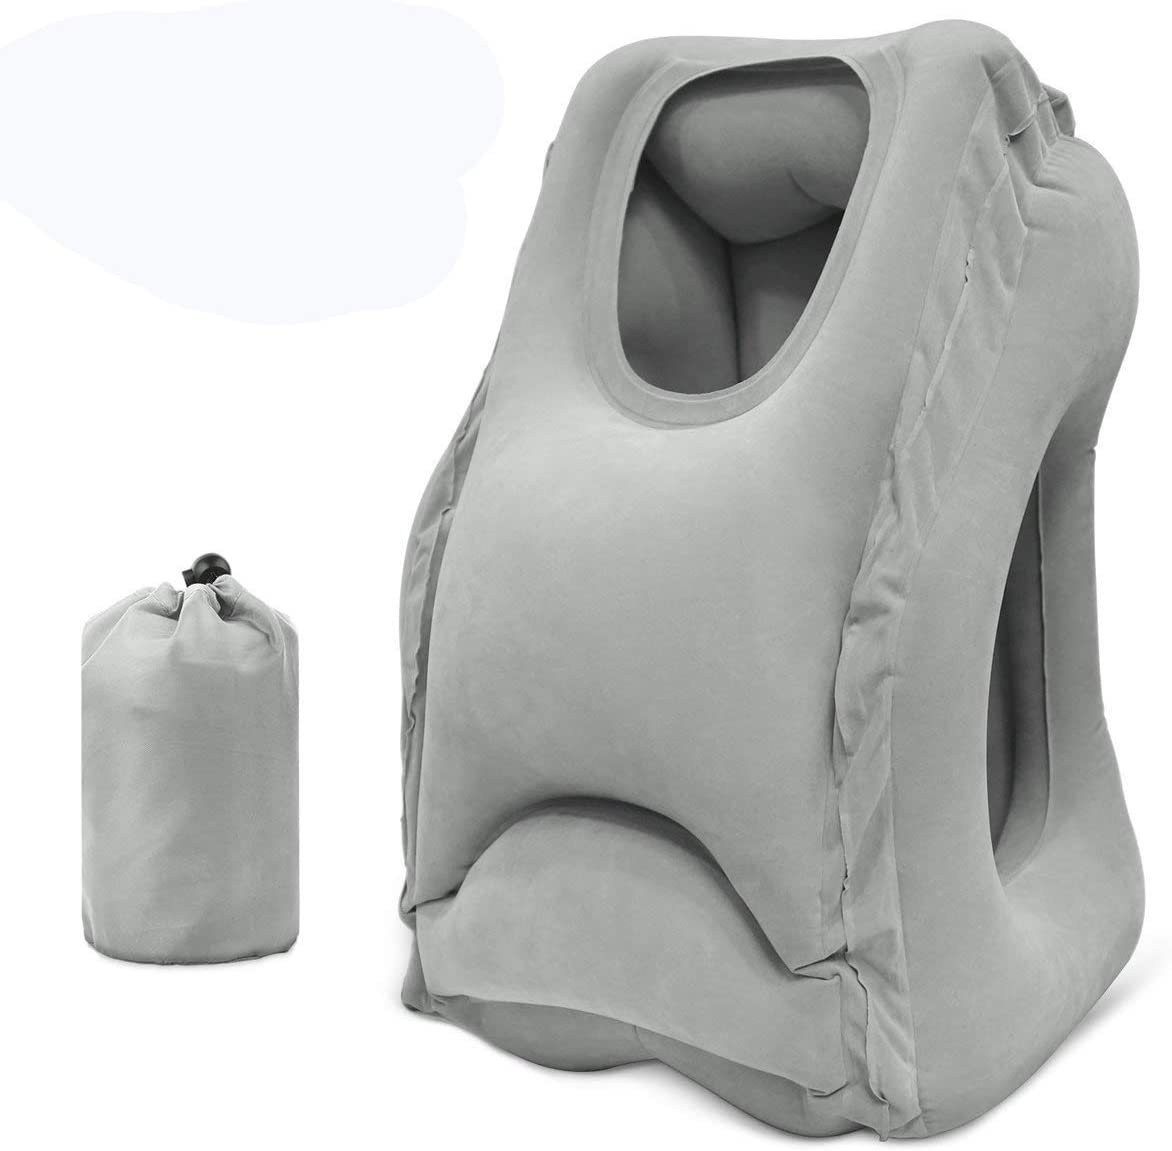 Inflatable Travel Pillow - Comfort and C with a Multifunctional Genuine Save money